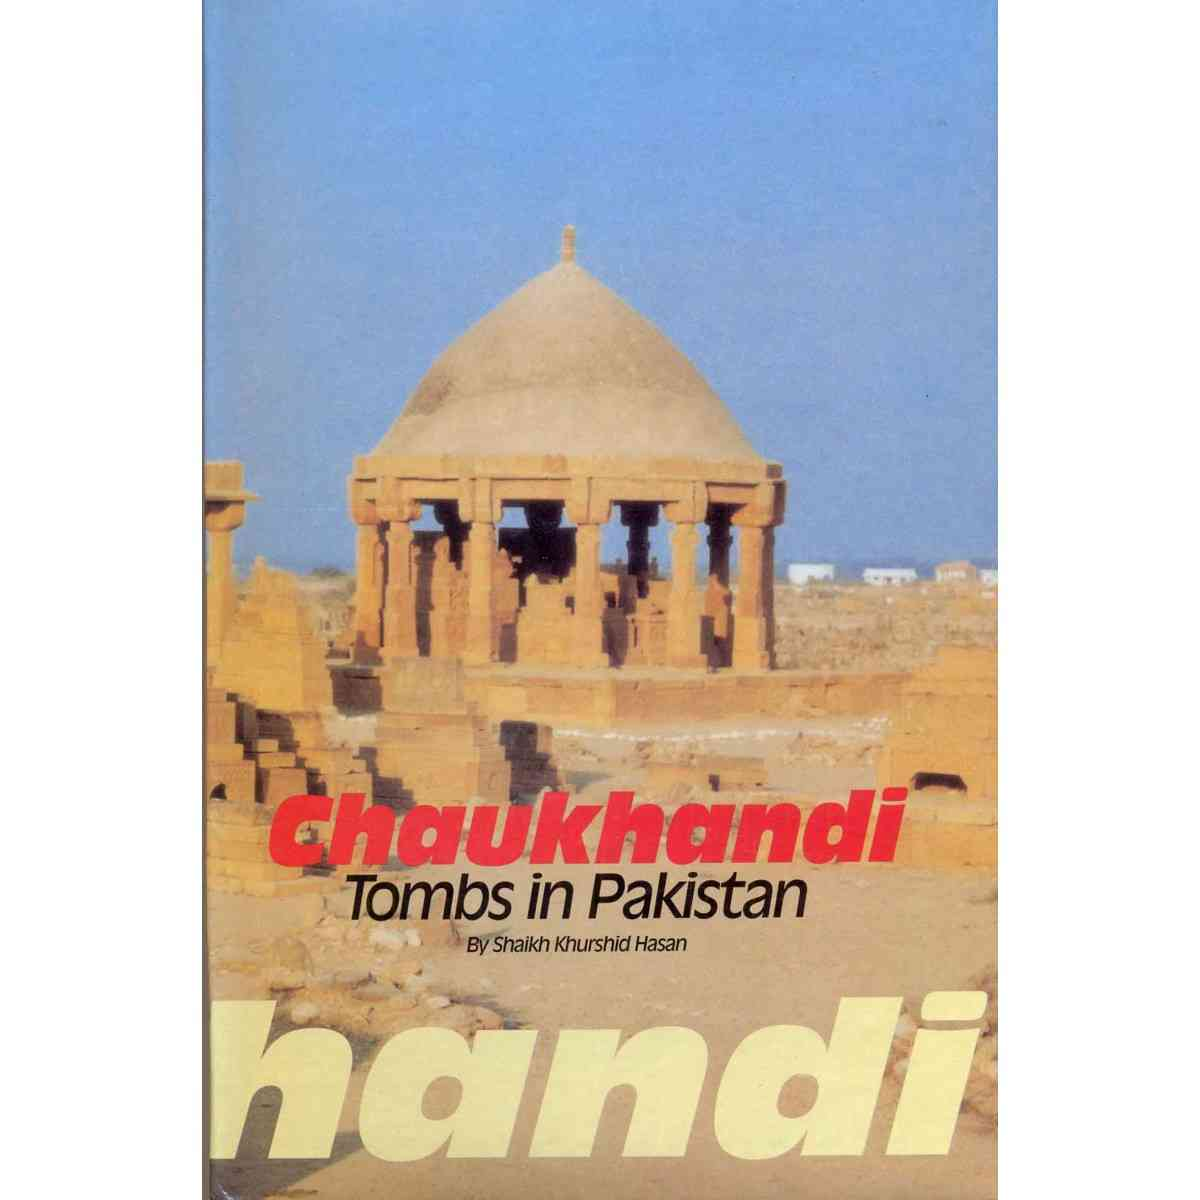 Royal Book Company Chaukhandi Tombs In Pakistan